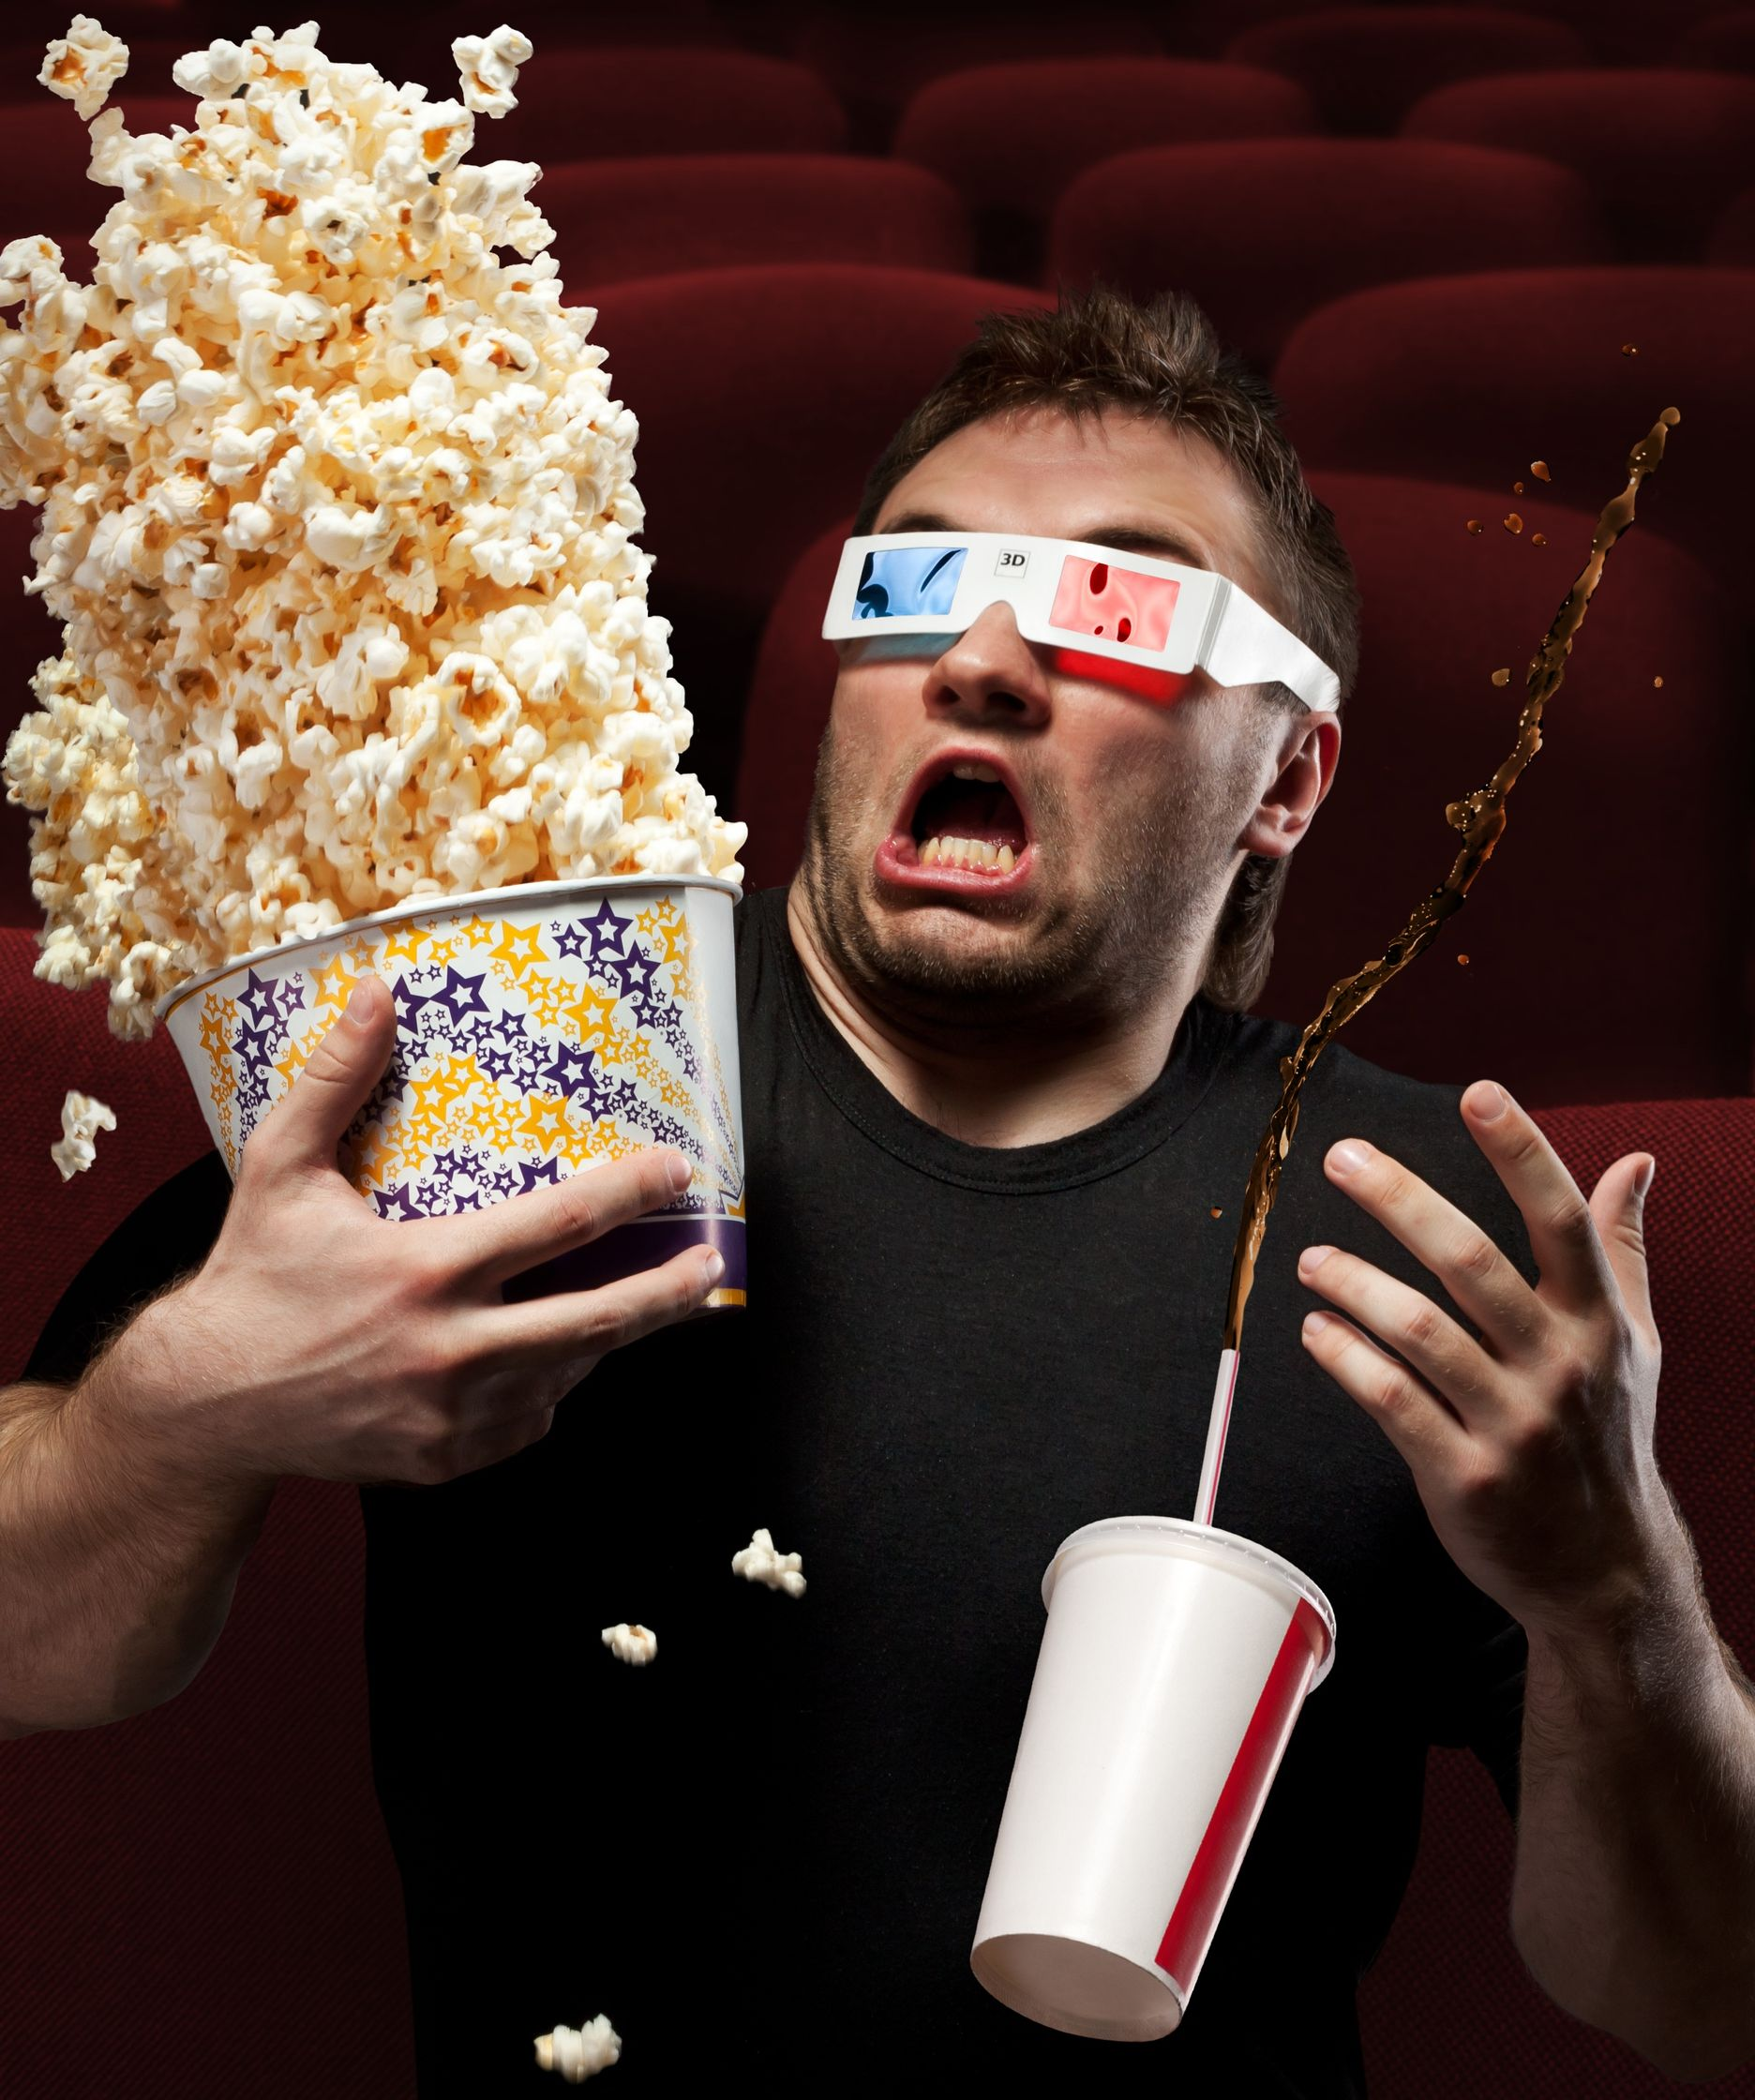 Full real 3D movie experience